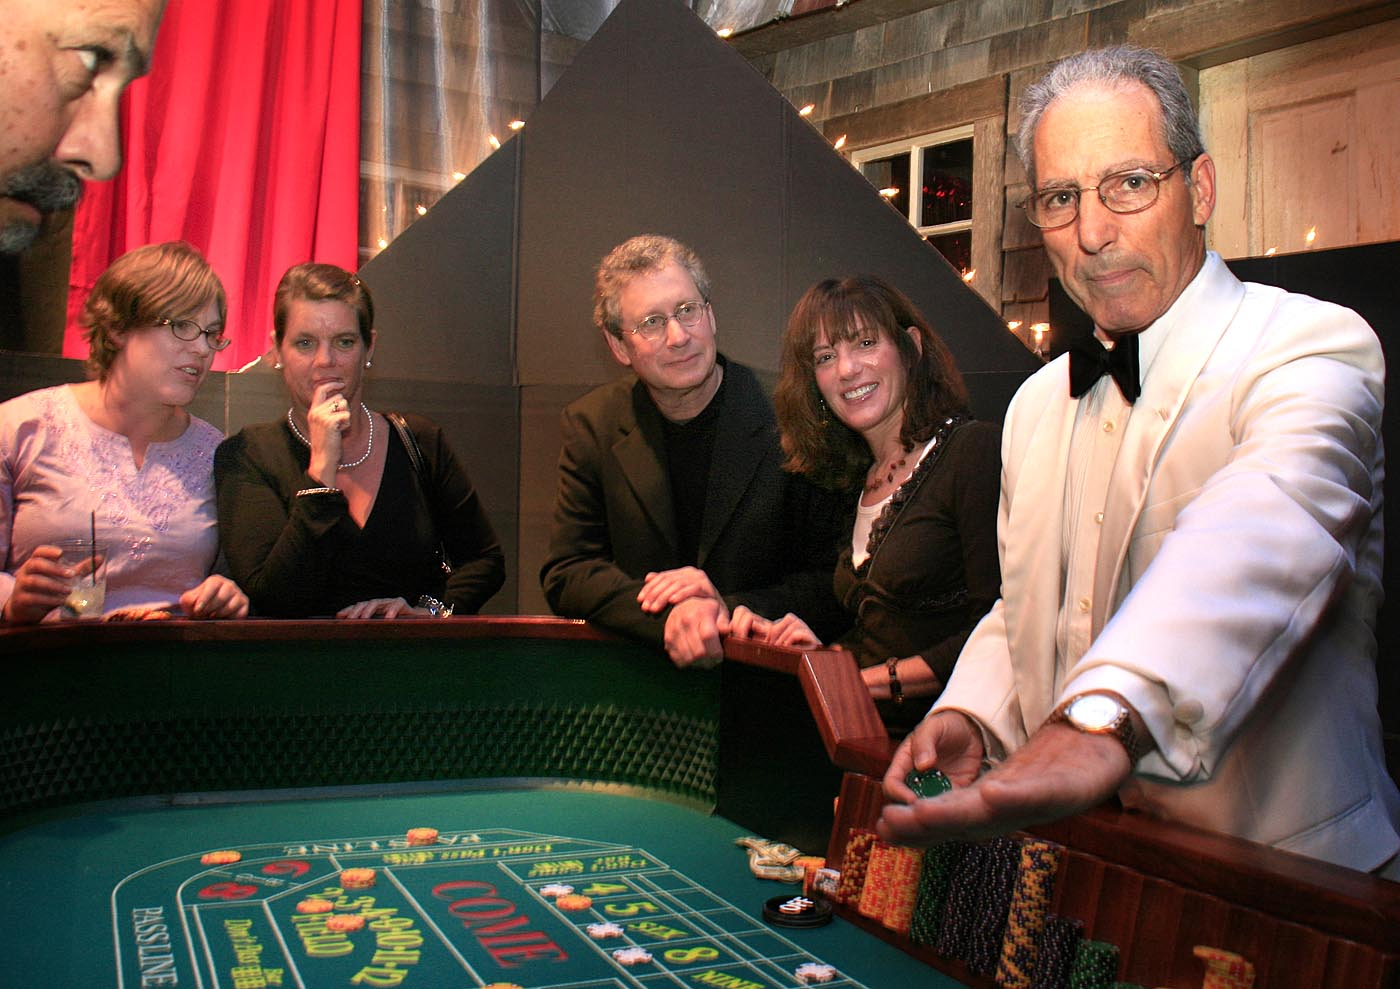 Casino night on marthas vineyard orleans hotels casino